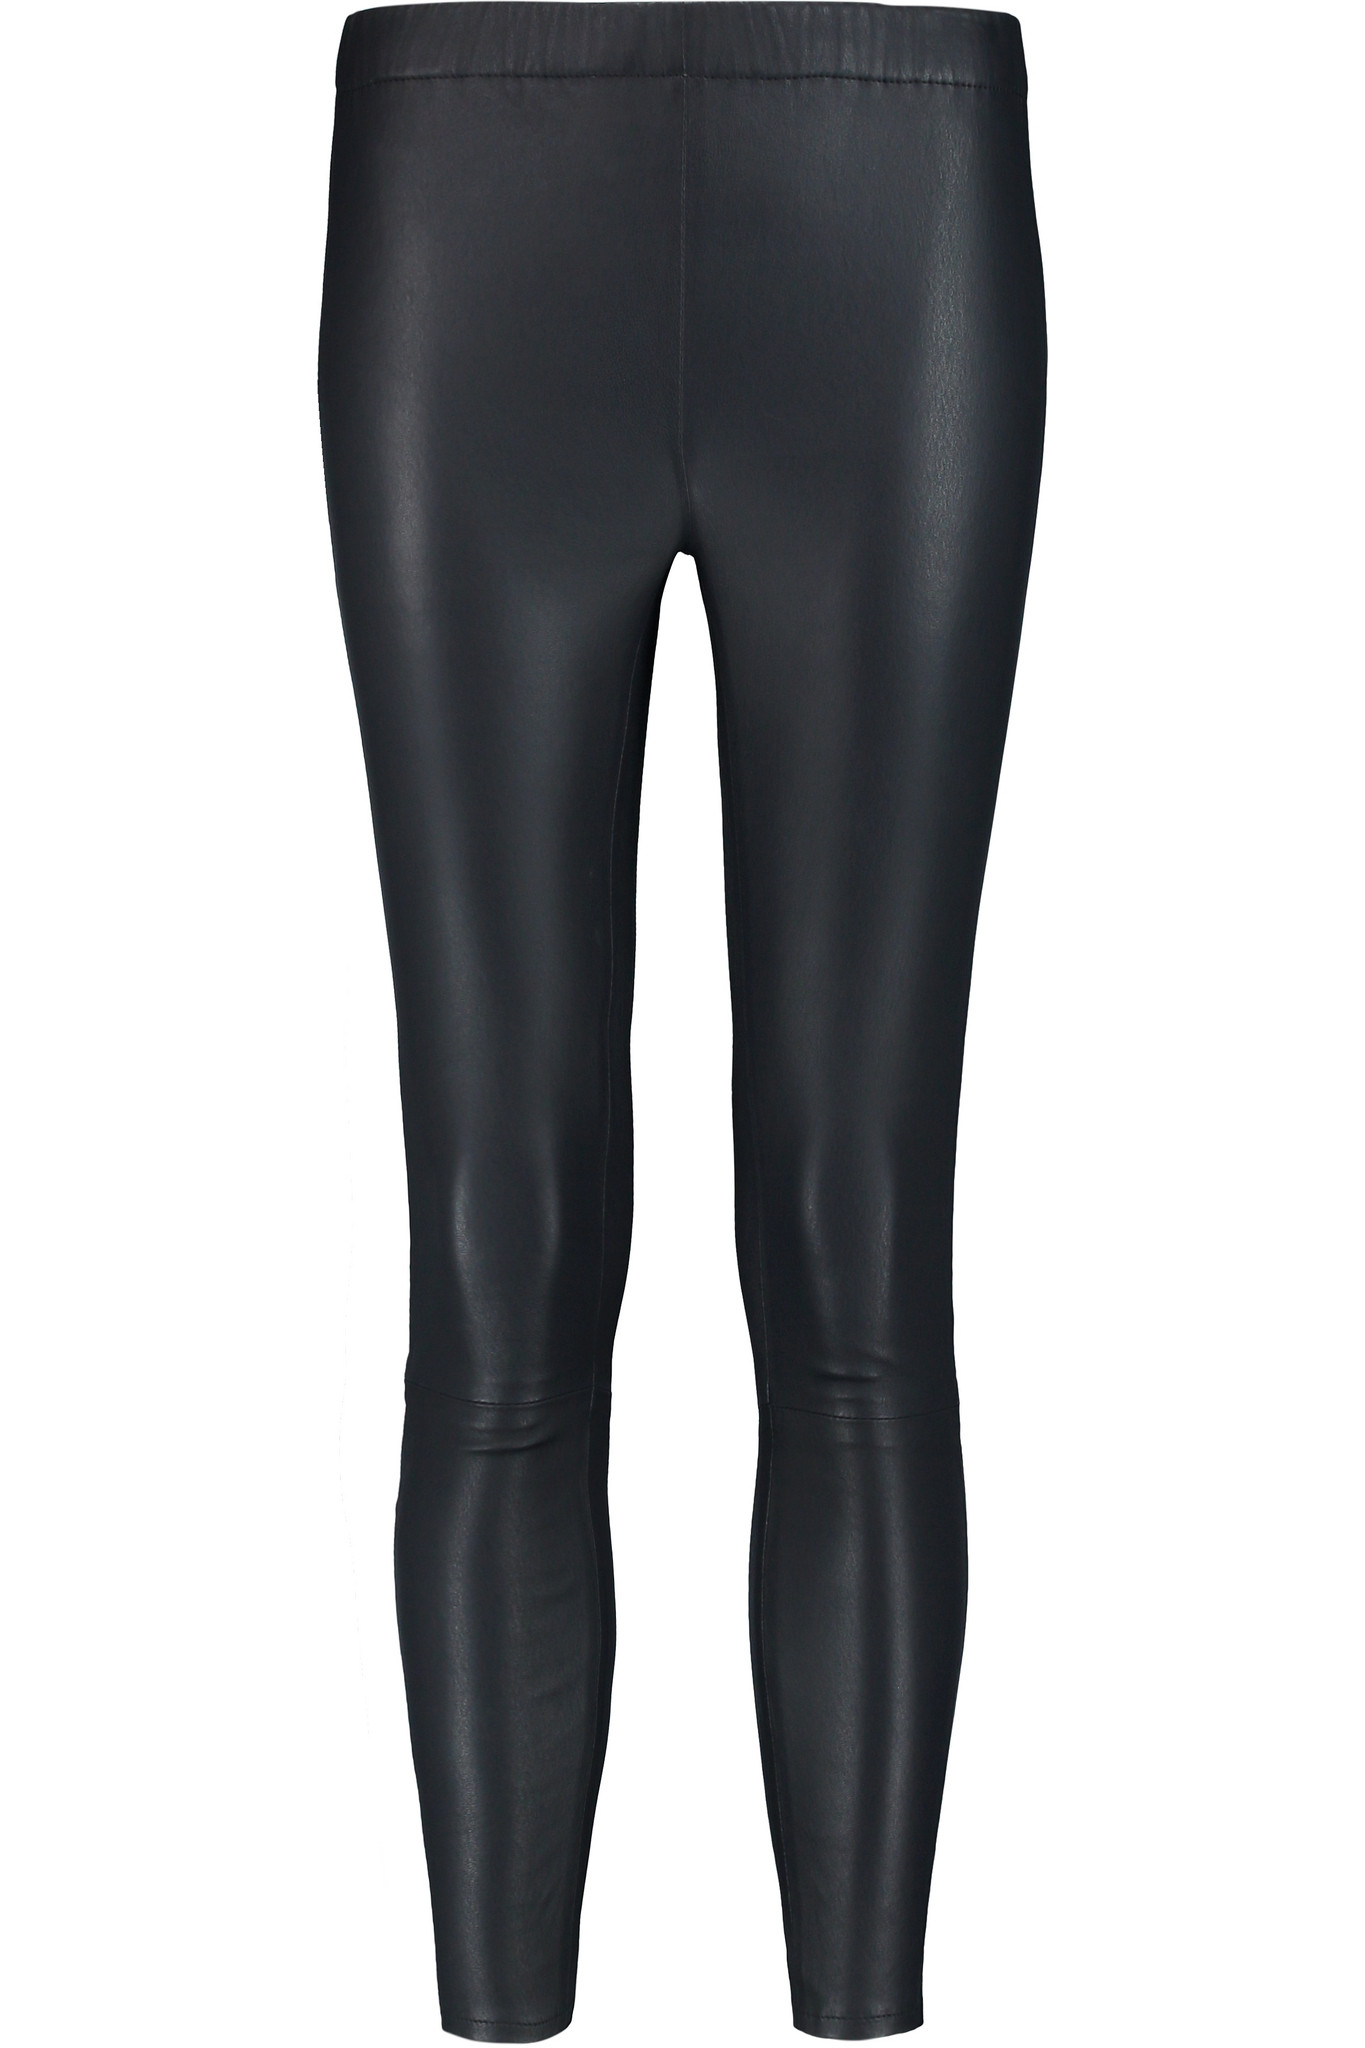 Find great deals on eBay for leather stretch leggings. Shop with confidence.